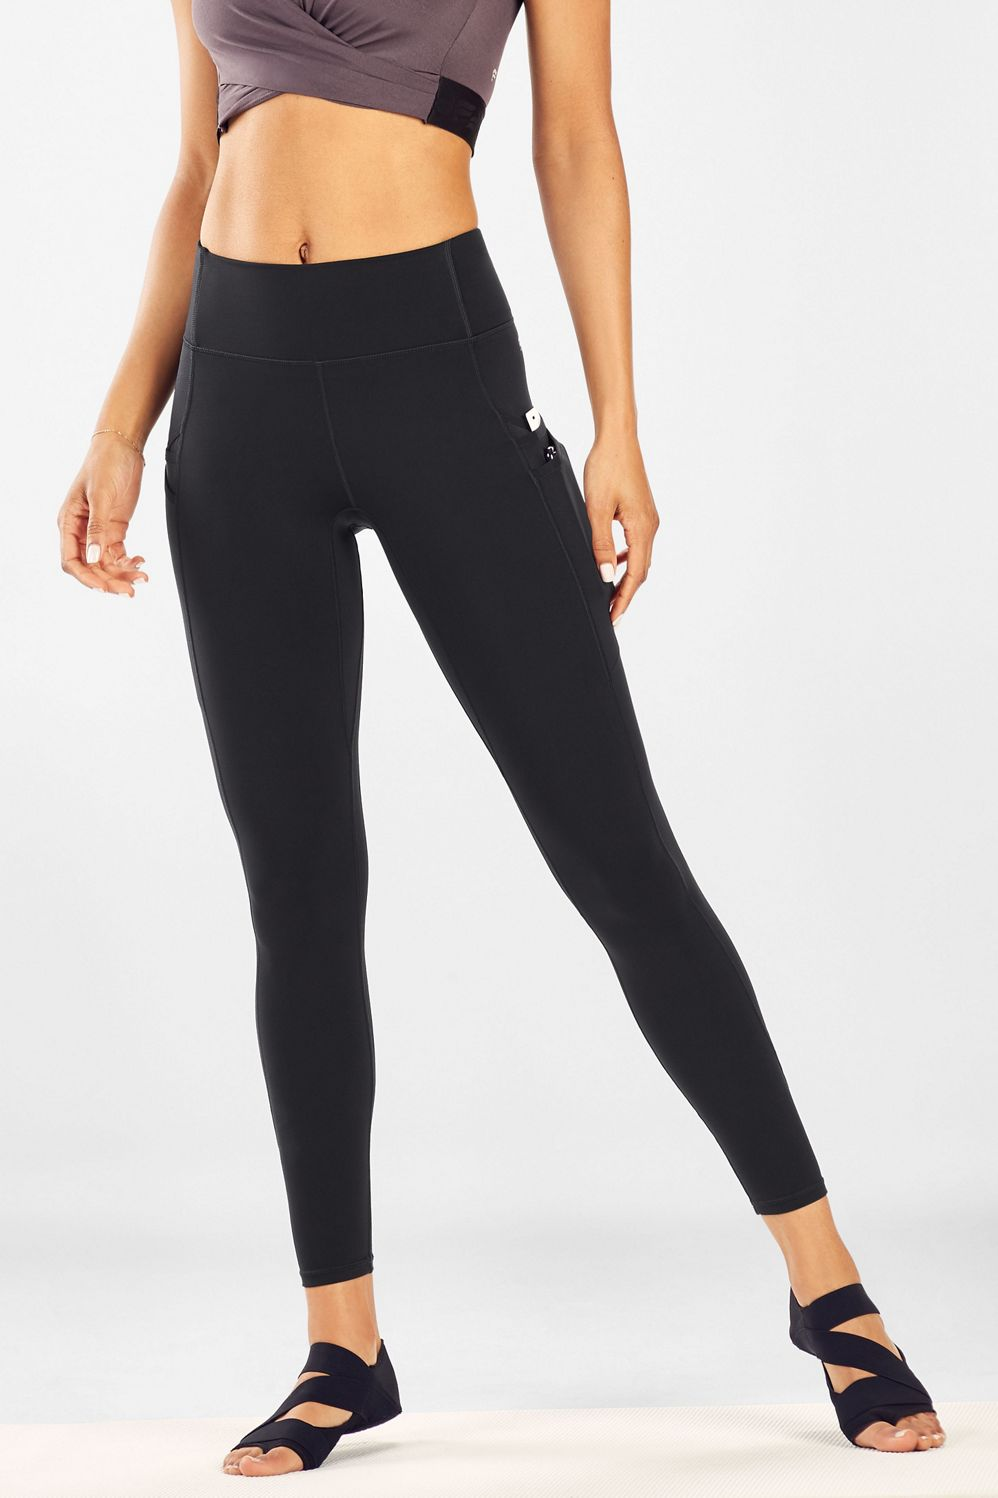 search for official meticulous dyeing processes many styles Trinity High-Waisted Pocket Legging